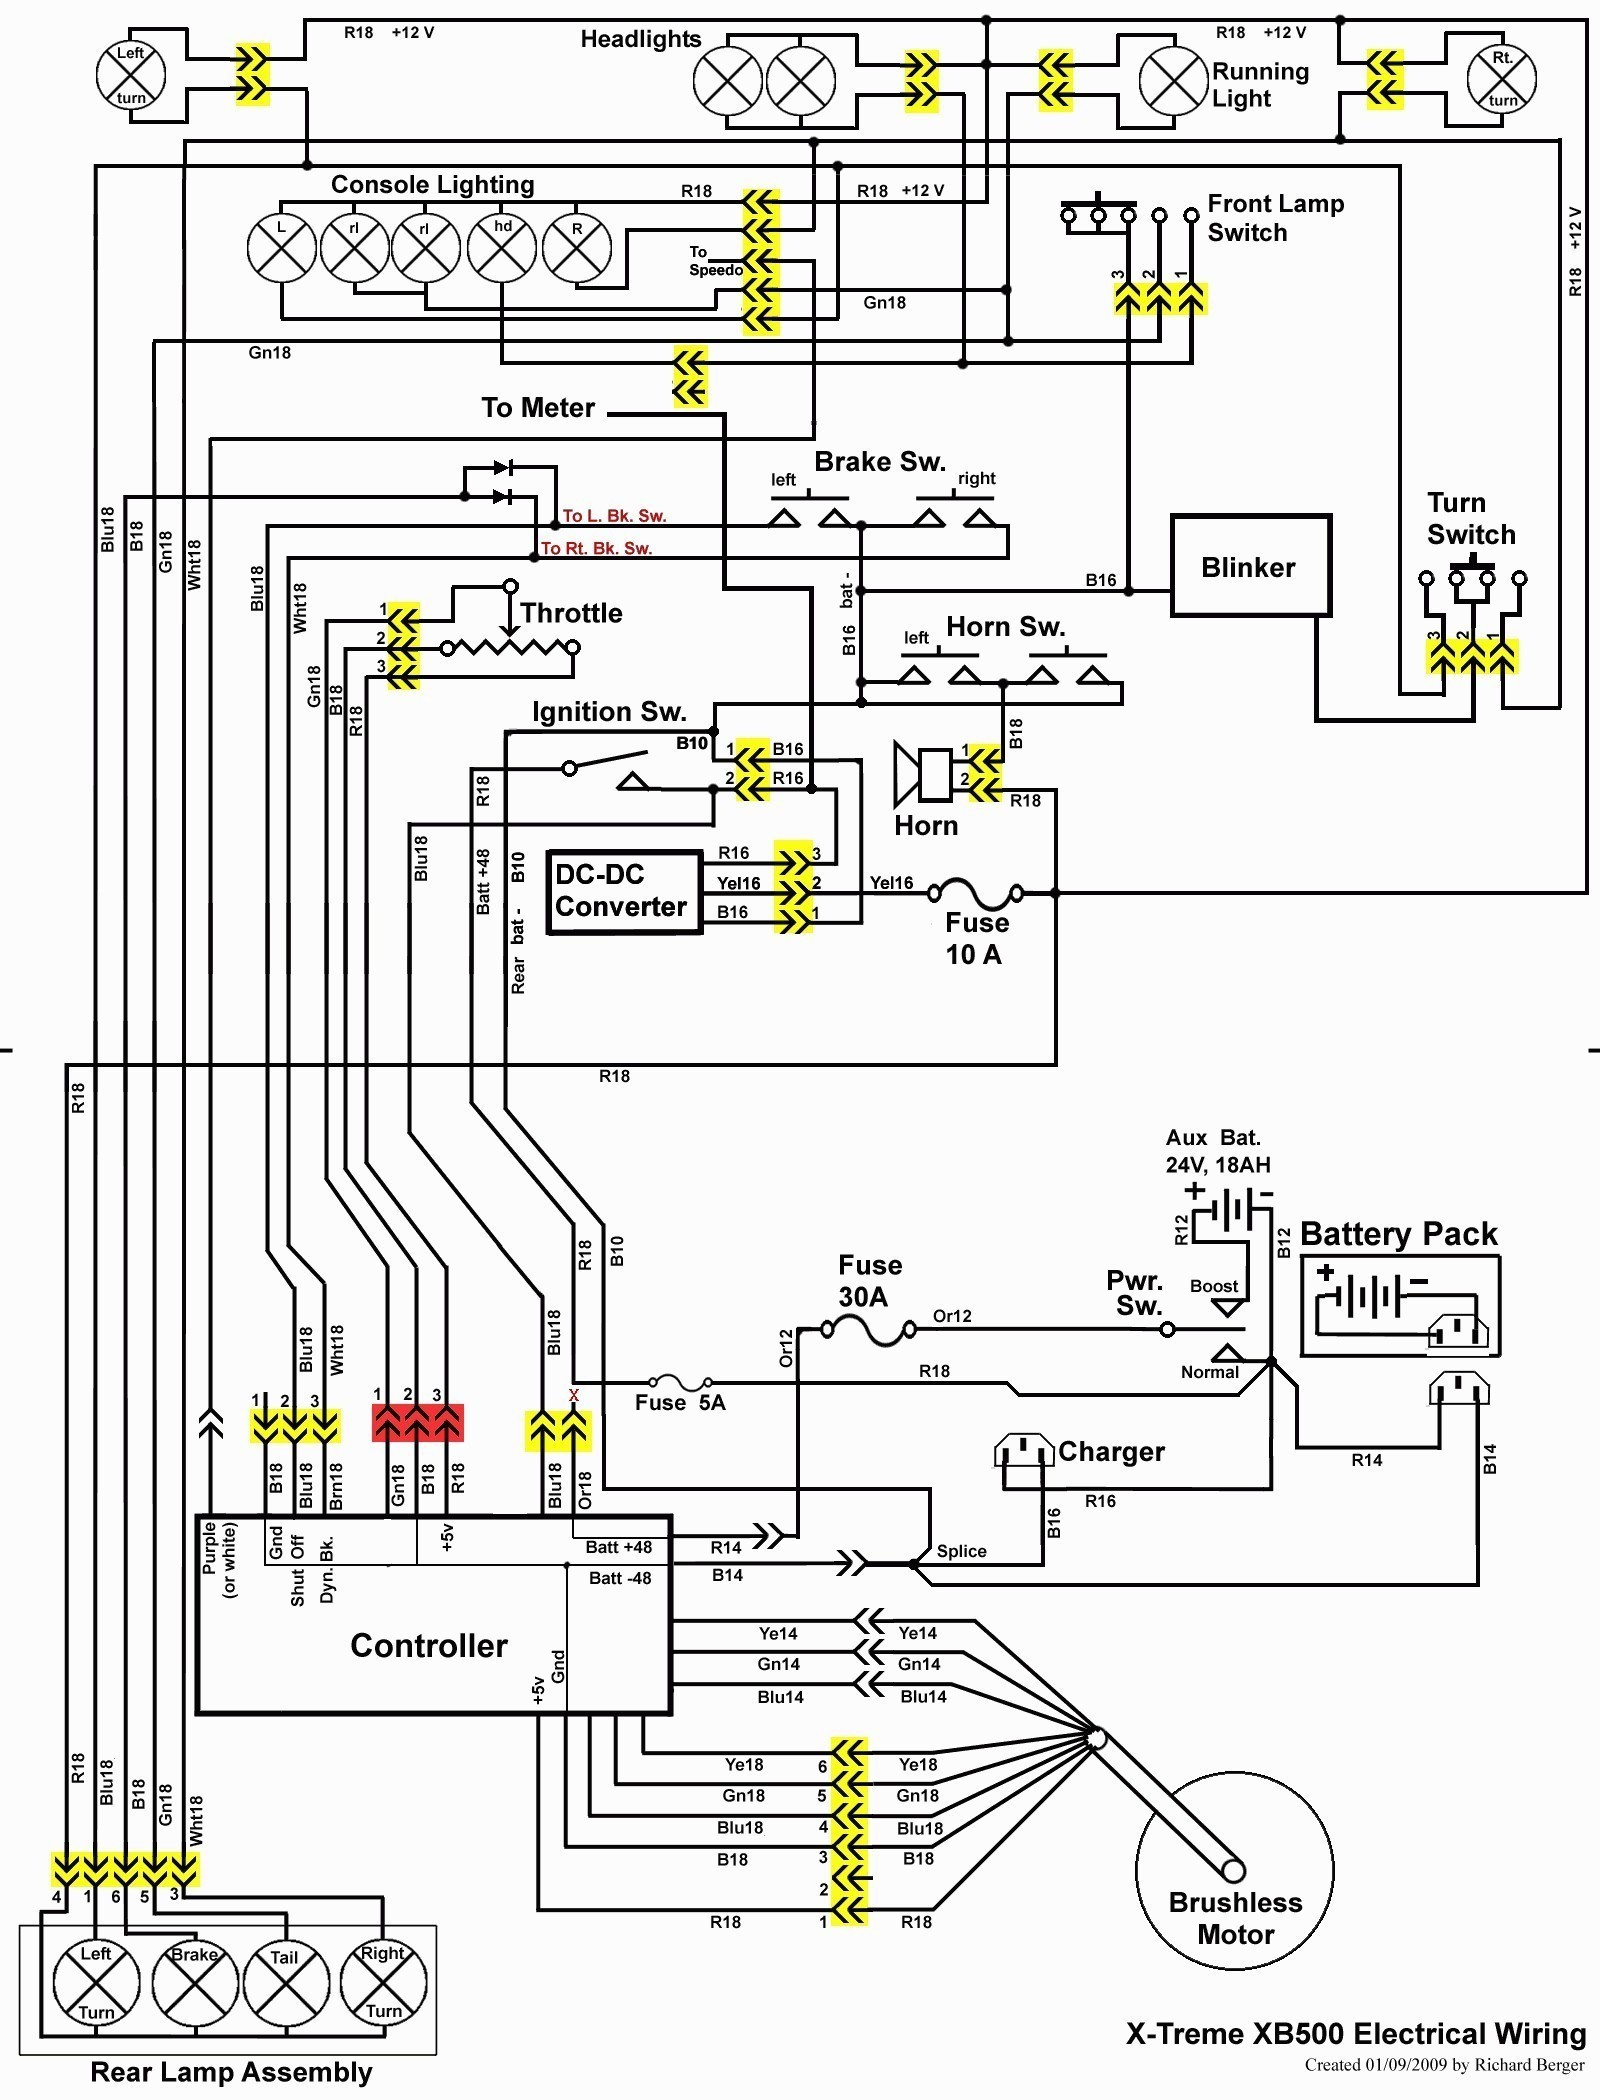 Nice Wiring Diagram For Electric Scooter E200 Razor Scooter Wiring Diagram 9 19 Kenmo Lp De